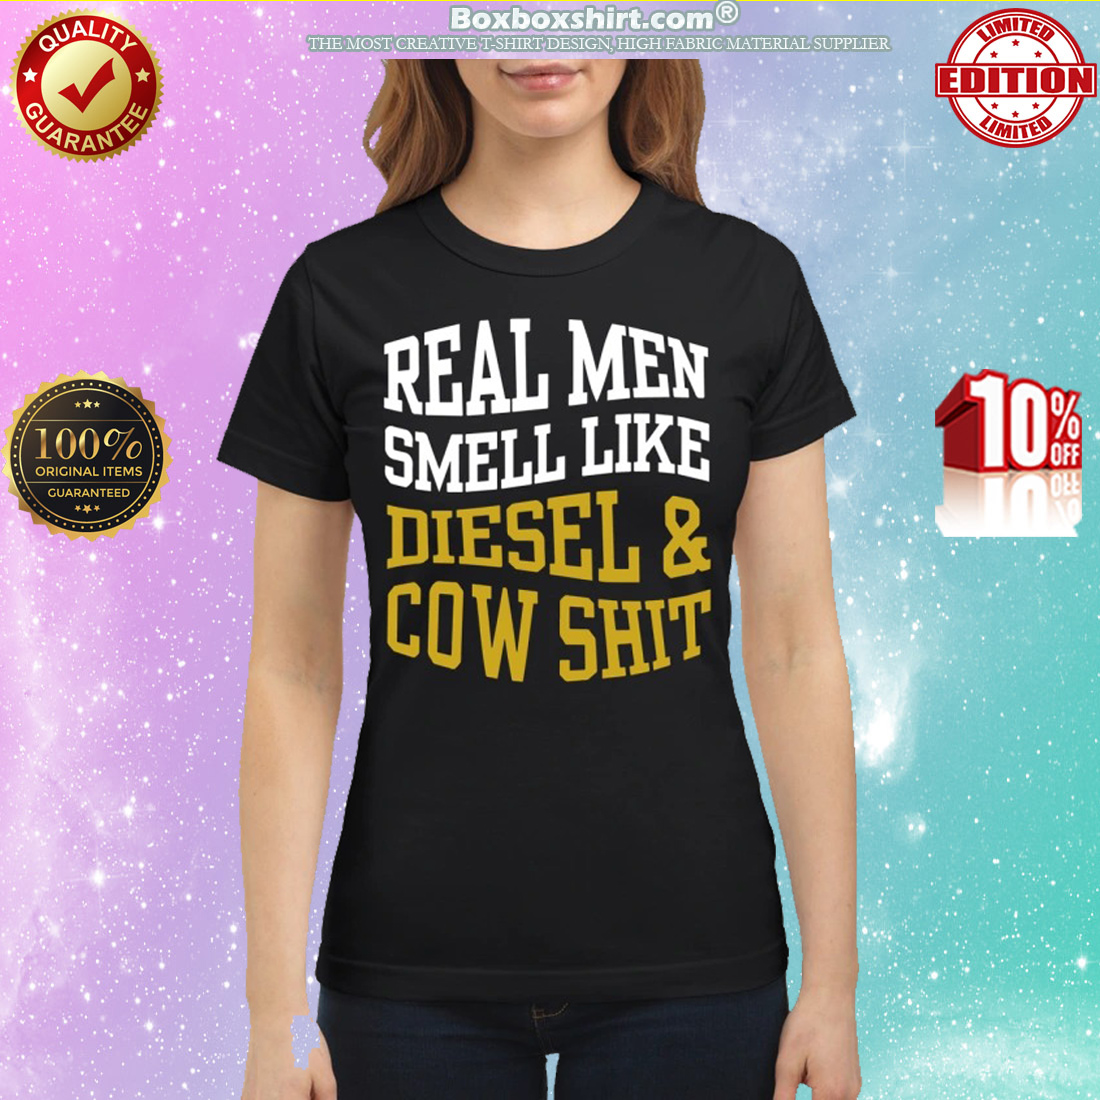 Real men smell like diesel and cow shit classic shirt